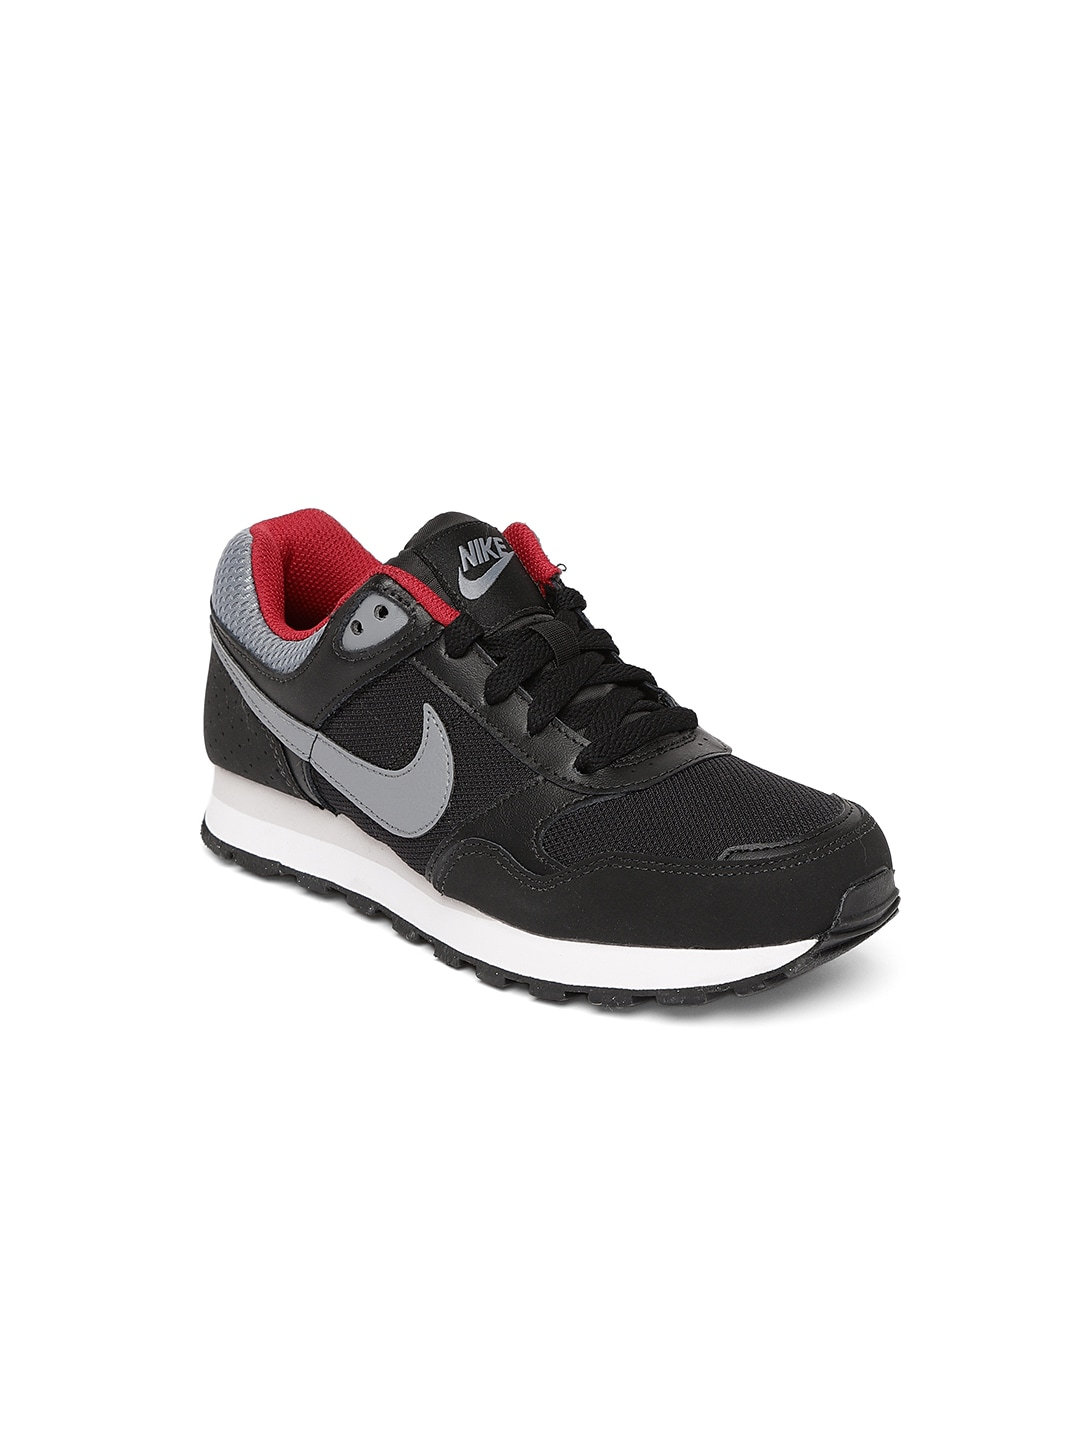 best cheap 6149c af0cc Boy s Nike Shoes - Buy Nike Shoes for Boys Online in India